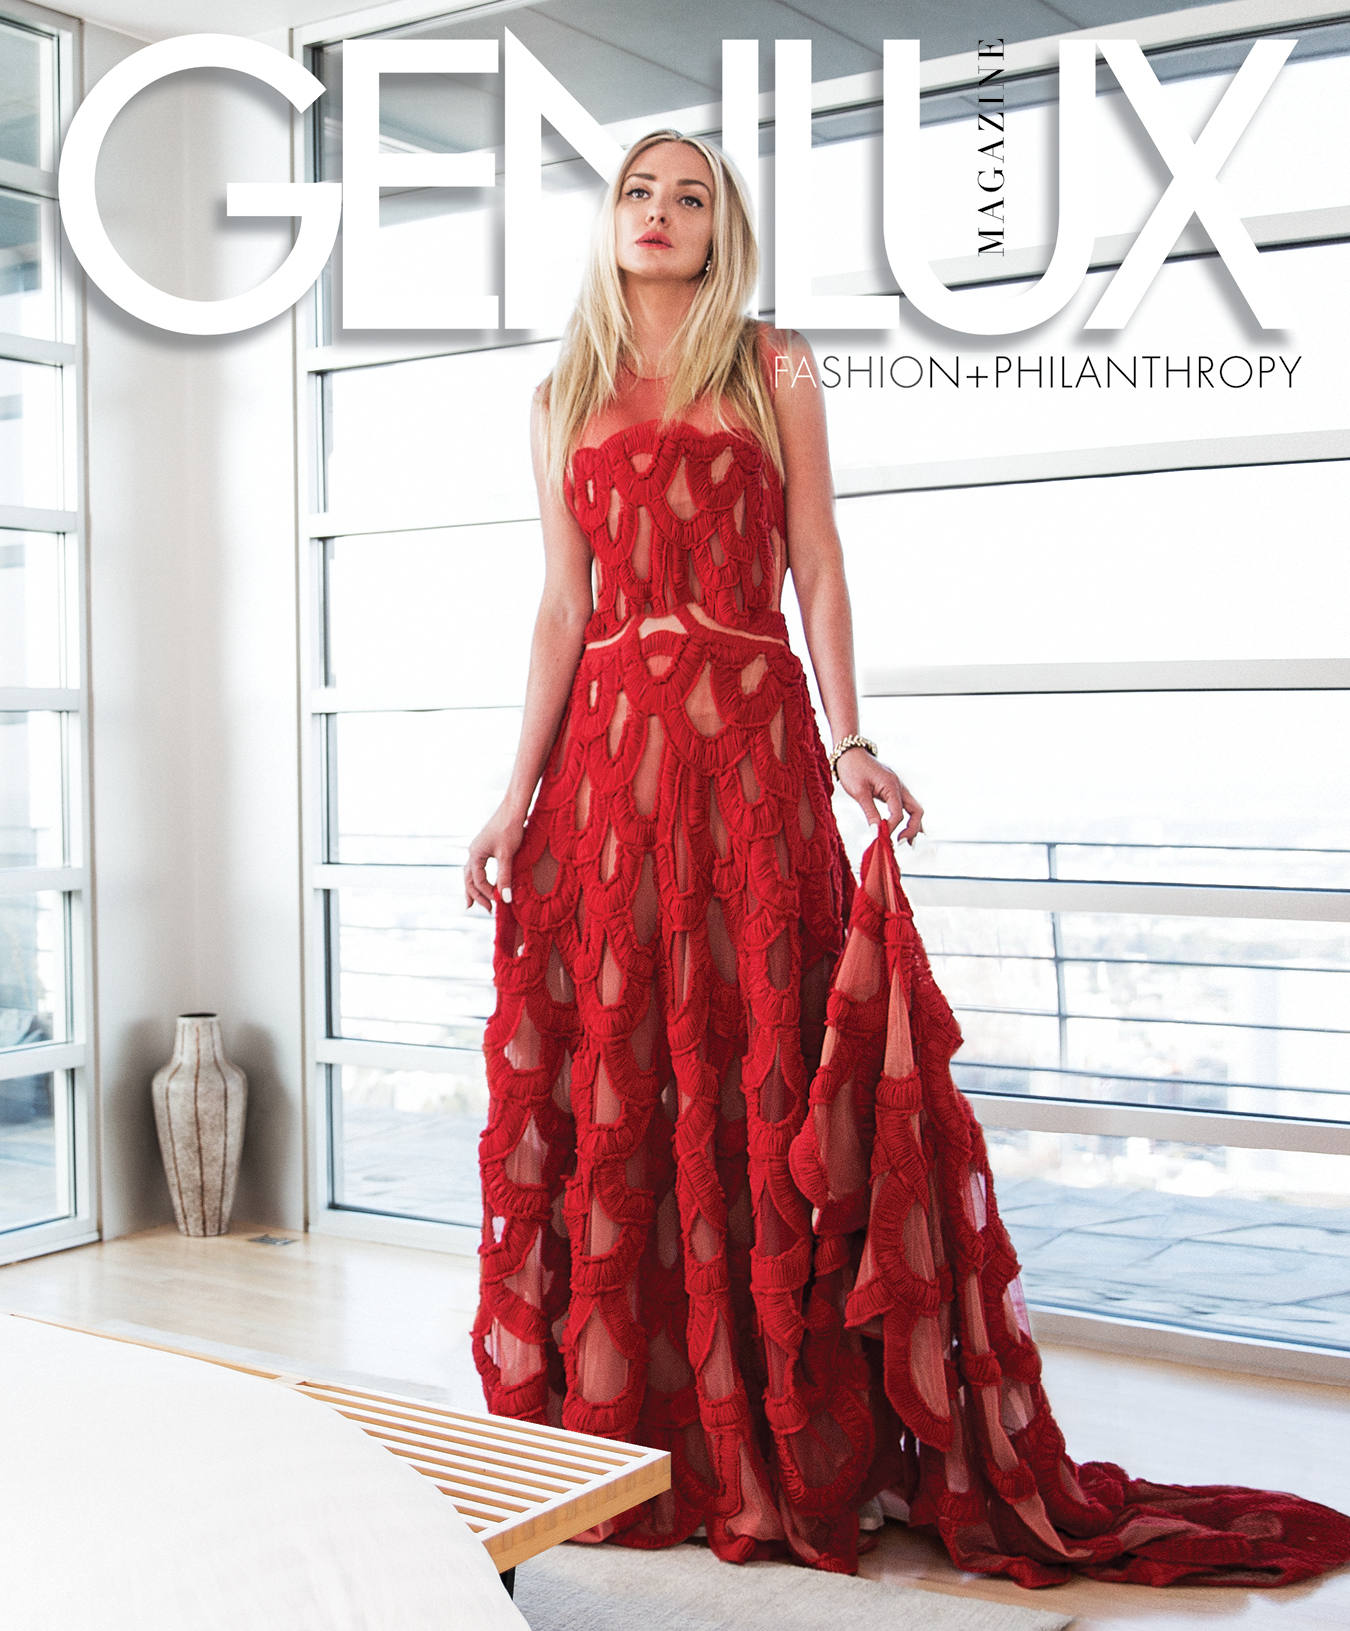 Genlux. July 2014. Niki Lund